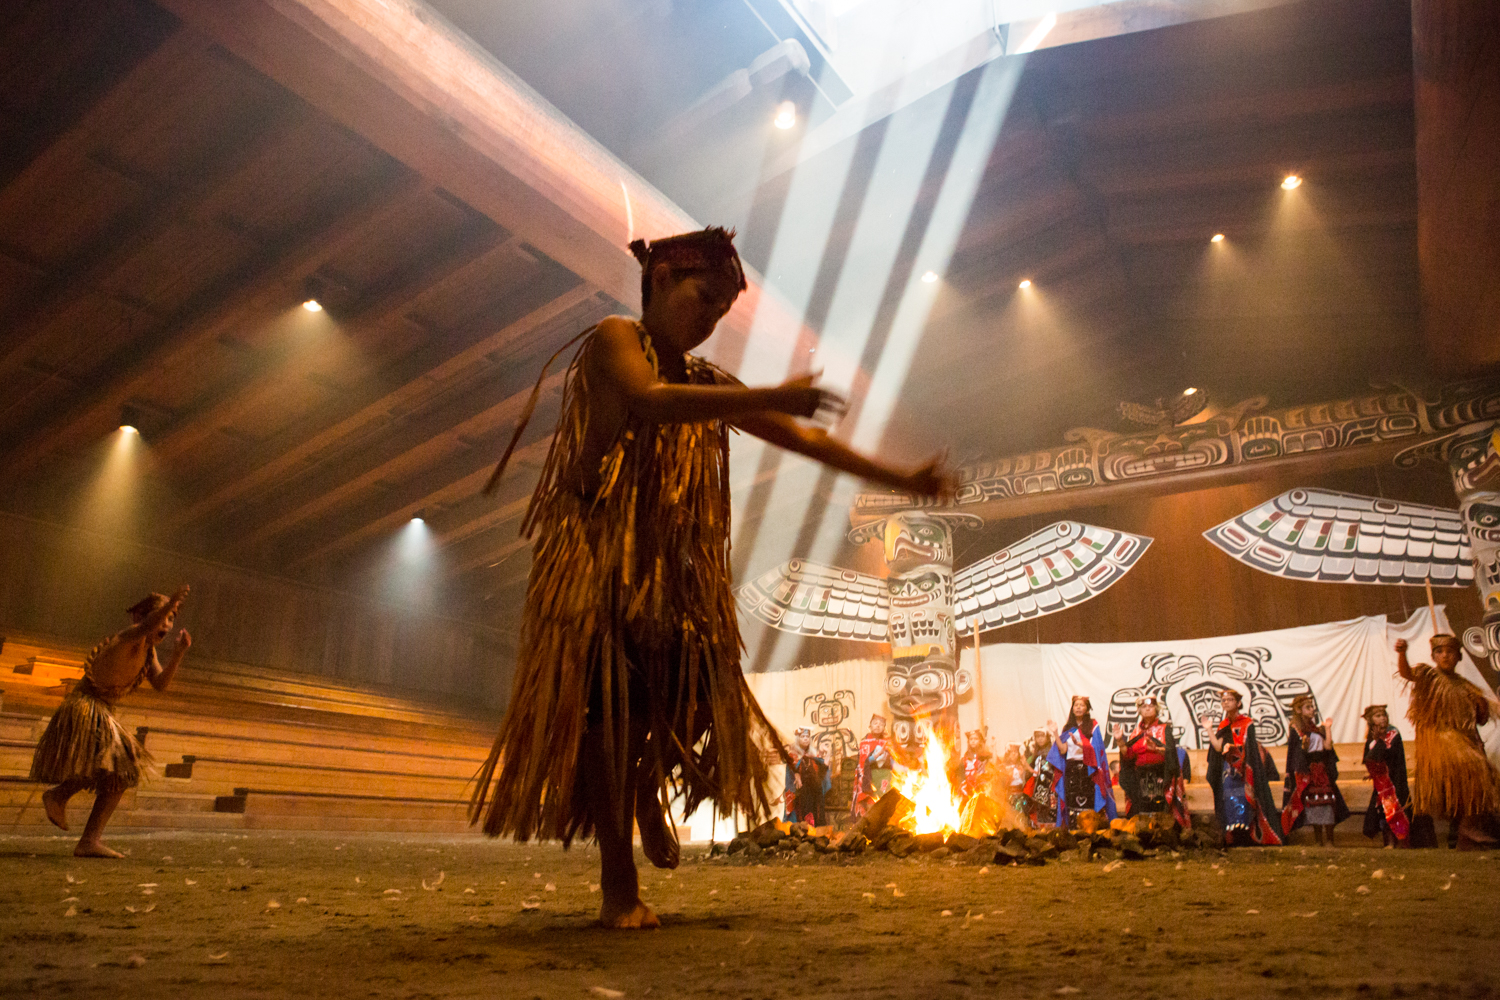 A young boy, part of the U'mista Cultural Center Group, dances within a traditional longhouse in Alert Bay, near the coast of Vancouver Island, British Columbia.